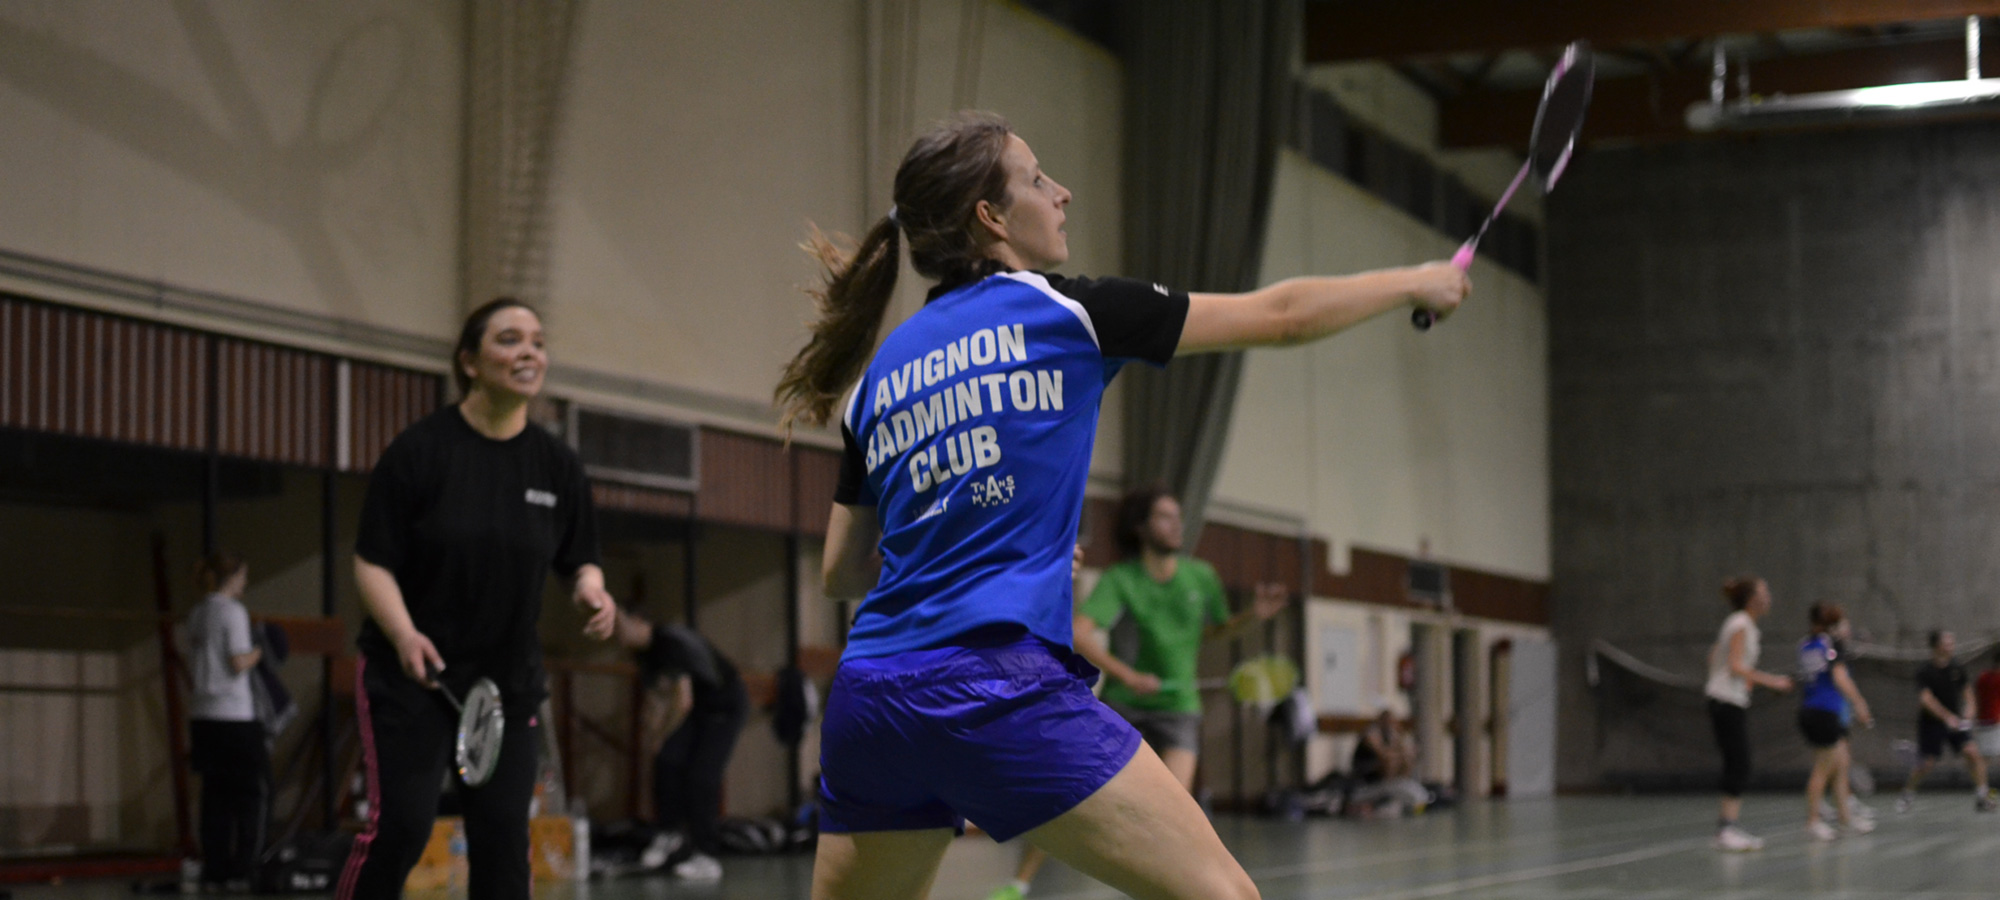 avignon badminton club